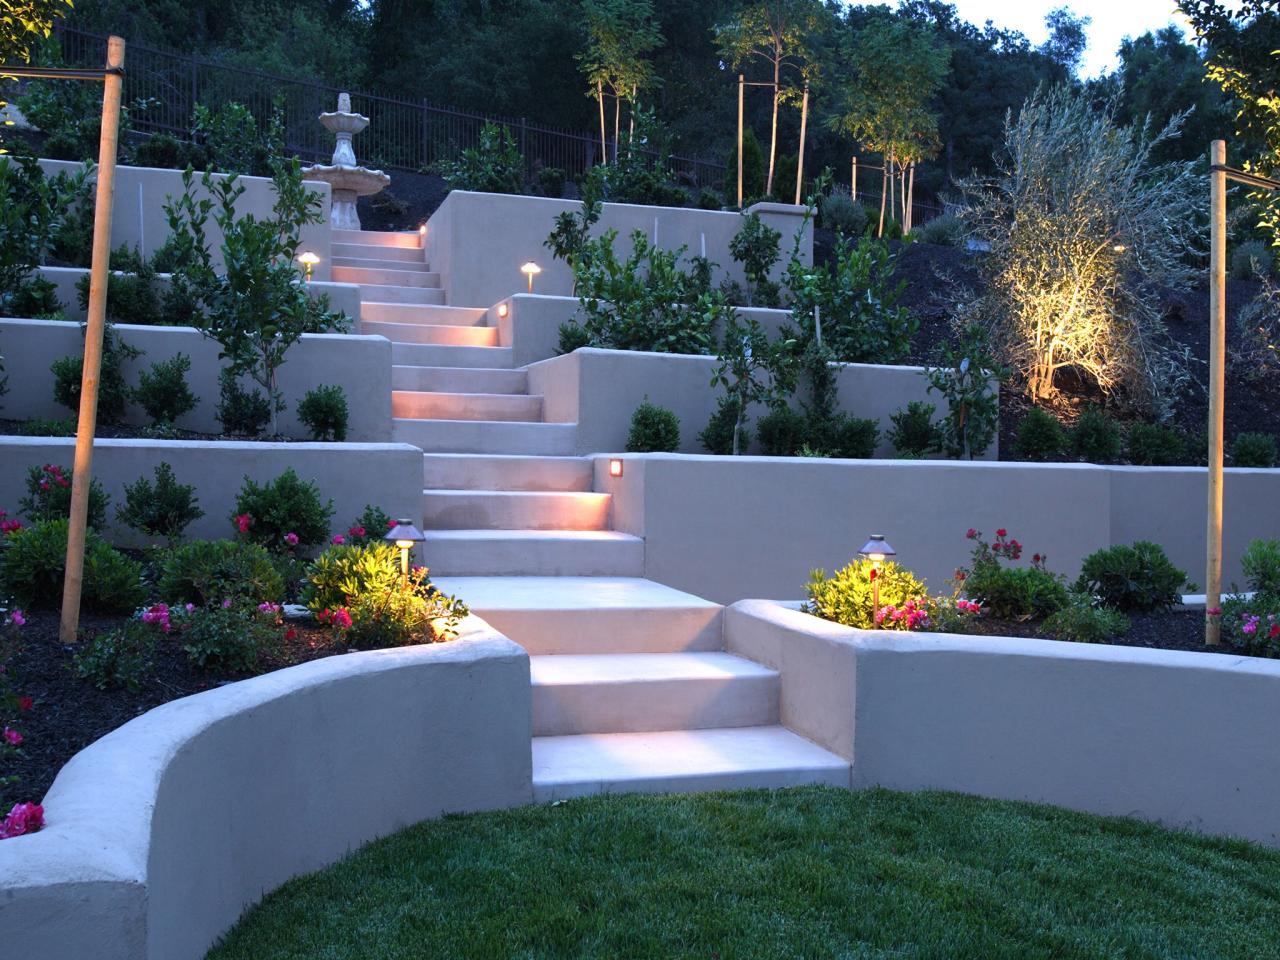 Hardscape design-Lakeland FL Landscape Designs & Outdoor Living Areas-We offer Landscape Design, Outdoor Patios & Pergolas, Outdoor Living Spaces, Stonescapes, Residential & Commercial Landscaping, Irrigation Installation & Repairs, Drainage Systems, Landscape Lighting, Outdoor Living Spaces, Tree Service, Lawn Service, and more.